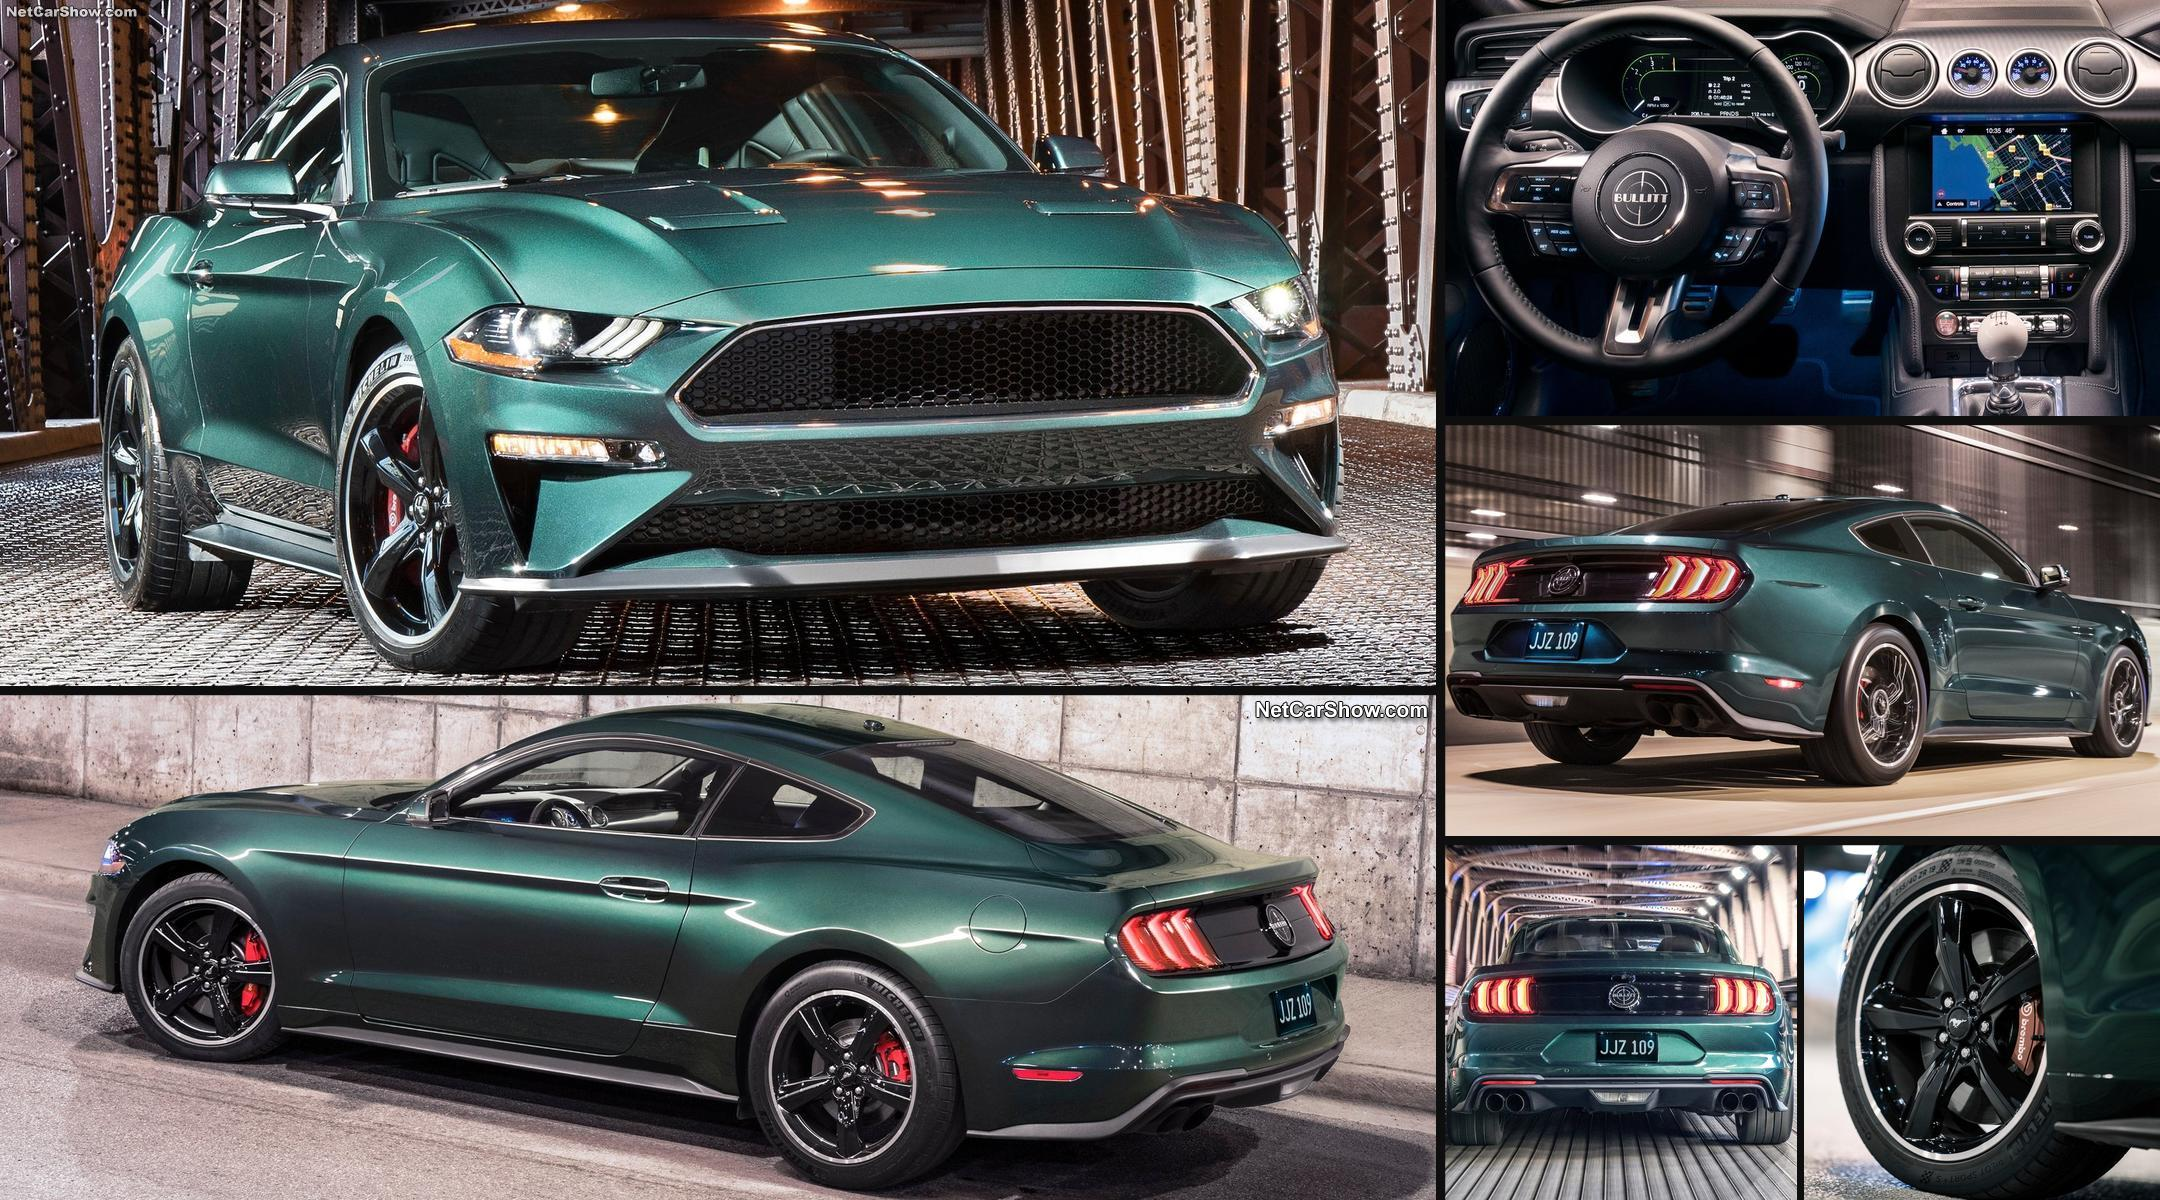 2018 Ford Bullitt Mustang New Car Release Date And